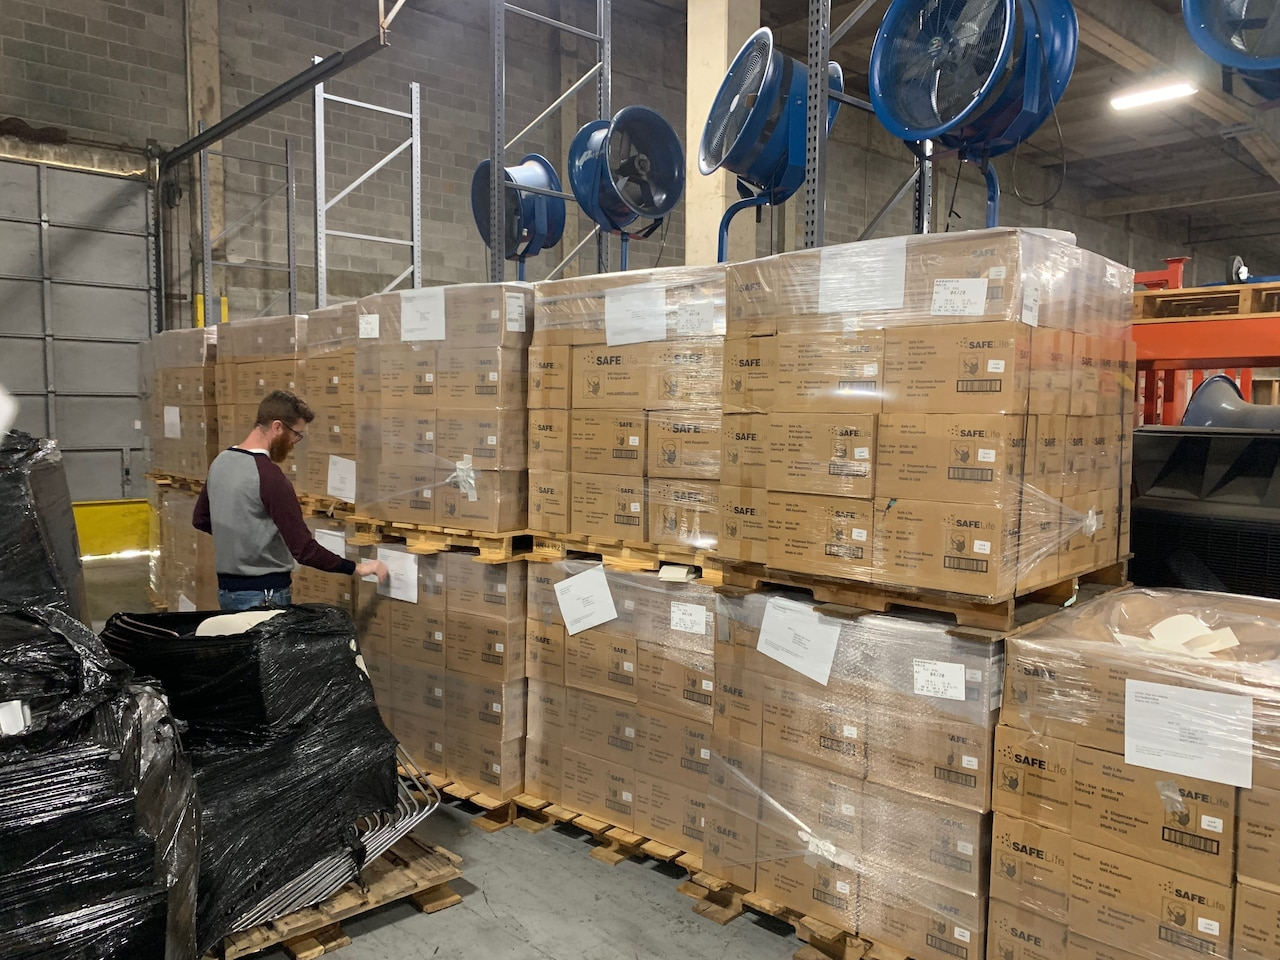 A man in a warehouse scans boxes on pallets.